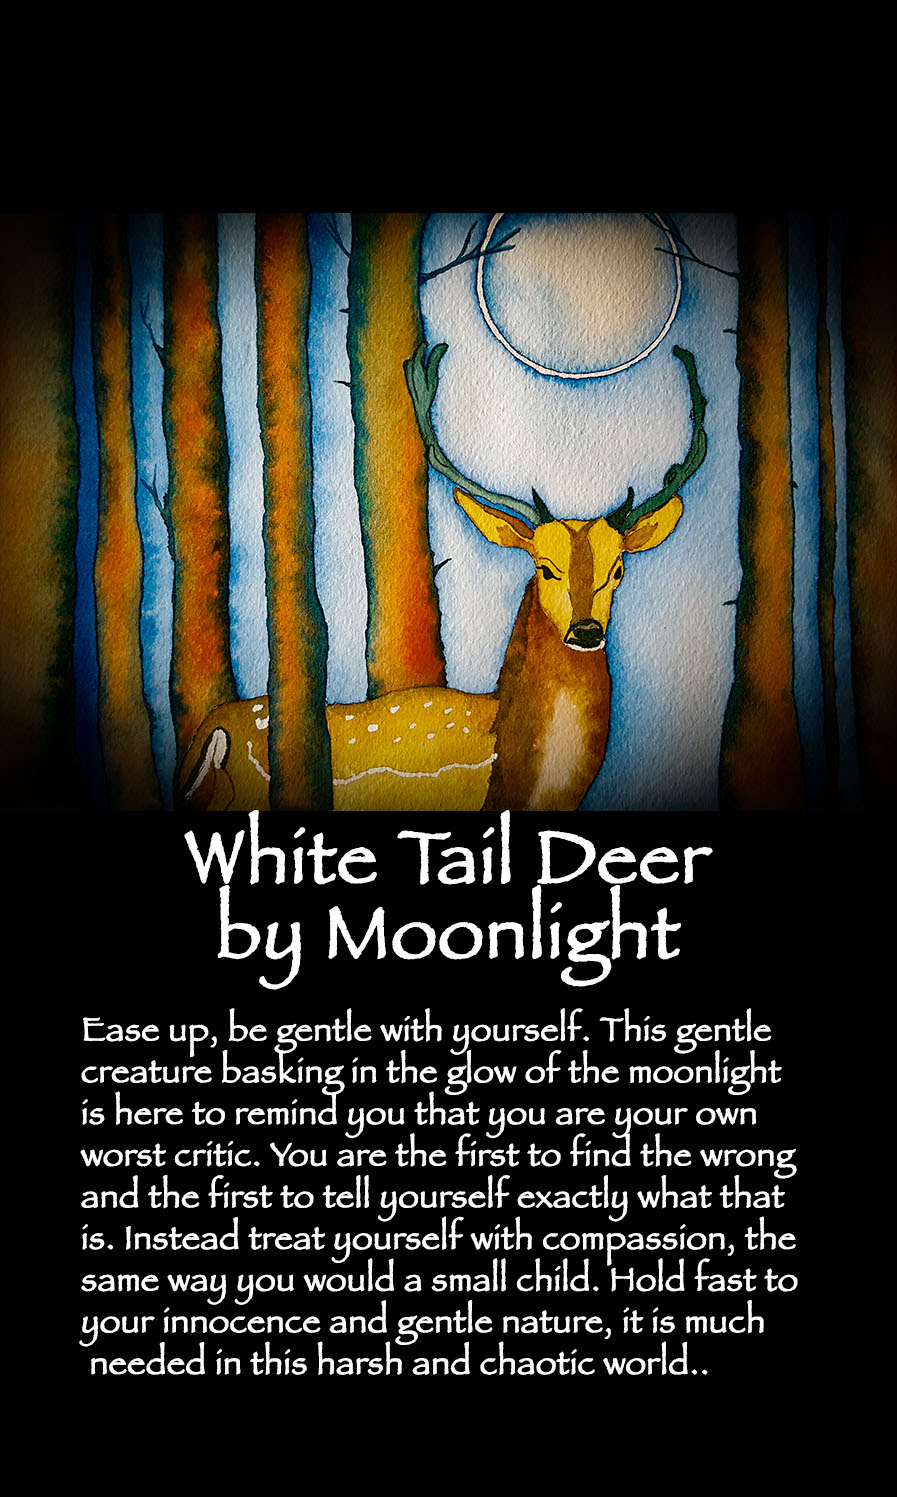 WhiteTailDeerbyMoonlightCard - Correction.jpg